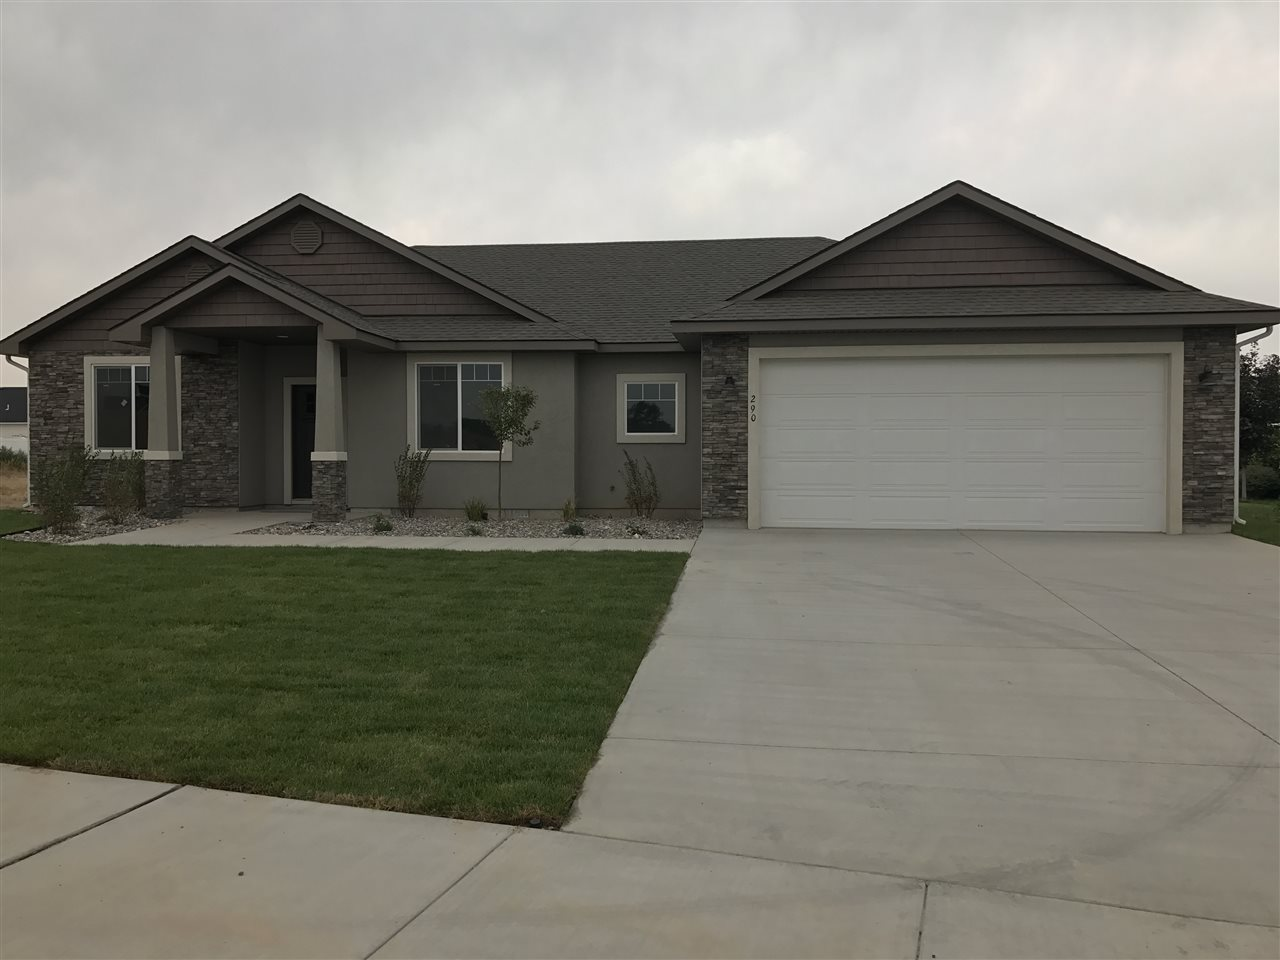 290 Cache Springs Dr, Kimberly, ID 83314